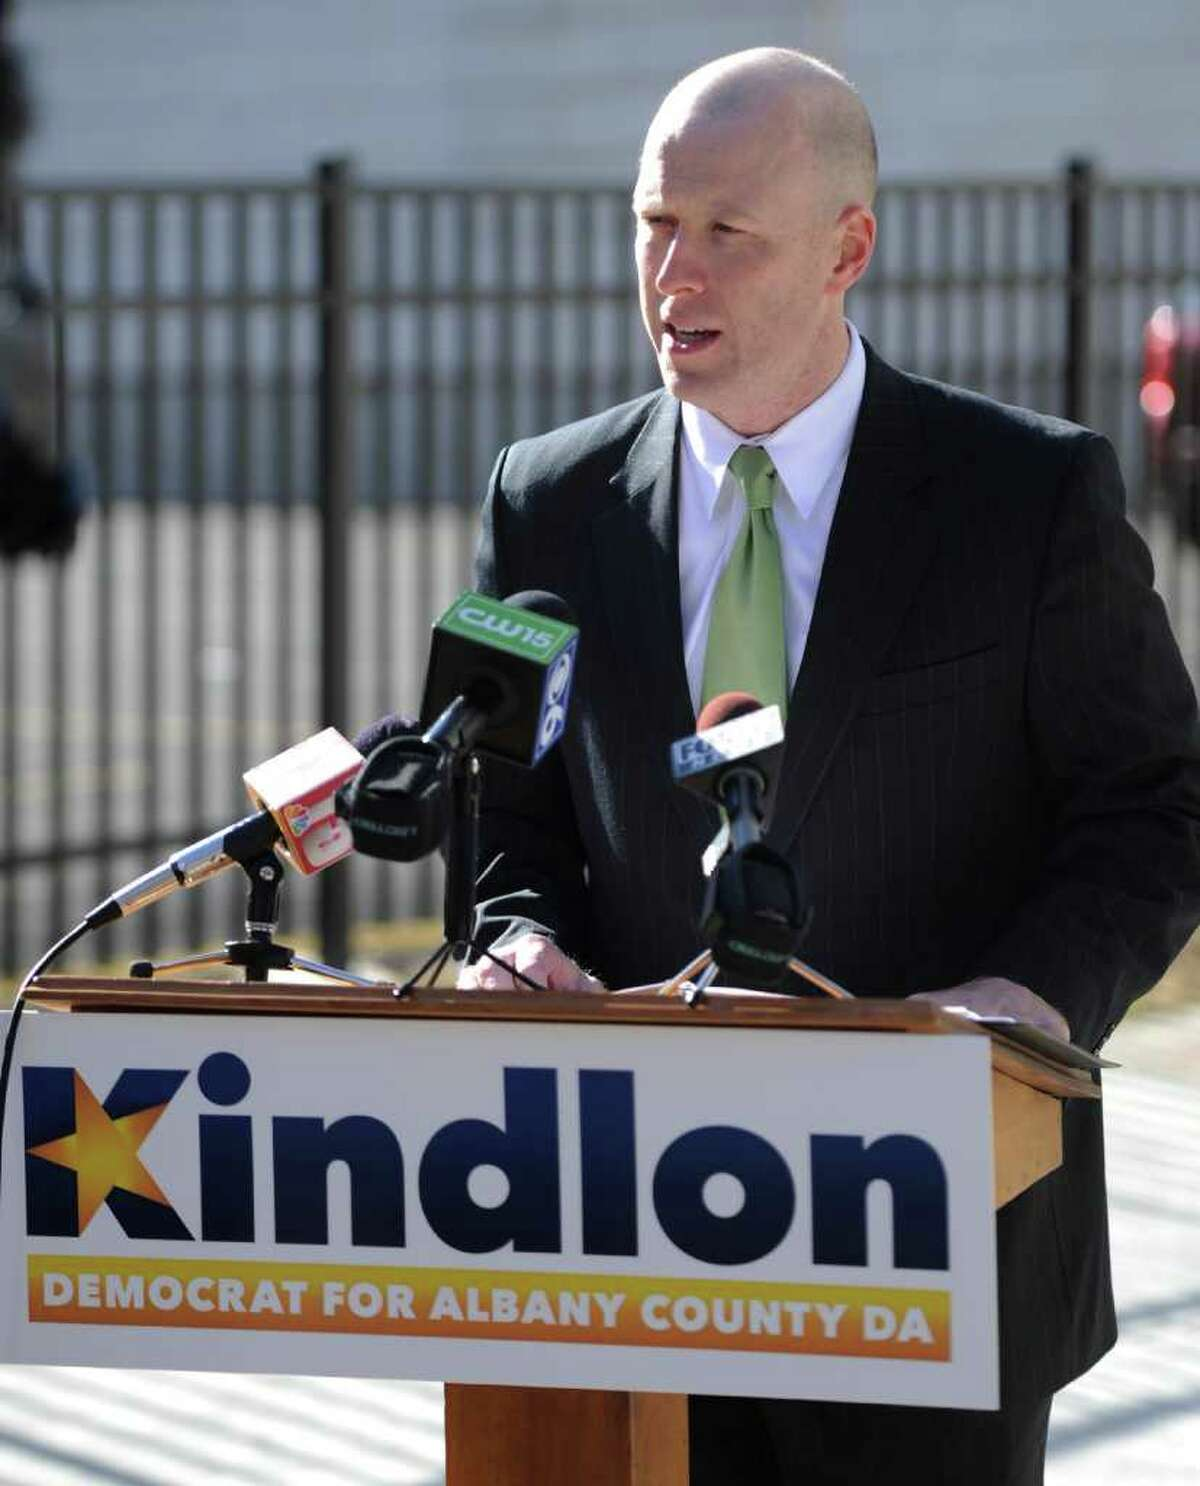 Lee Kindlon, candidate for Albany County DA, speaks at a press conference in Albany, N.Y. Feb. 20, 2012. Kindlon resigned his post in the county?s Alternate Public Defender?s Office Tuesday, a week after his party backed incumbent David Soares. (Skip Dickstein / Times Union archive)